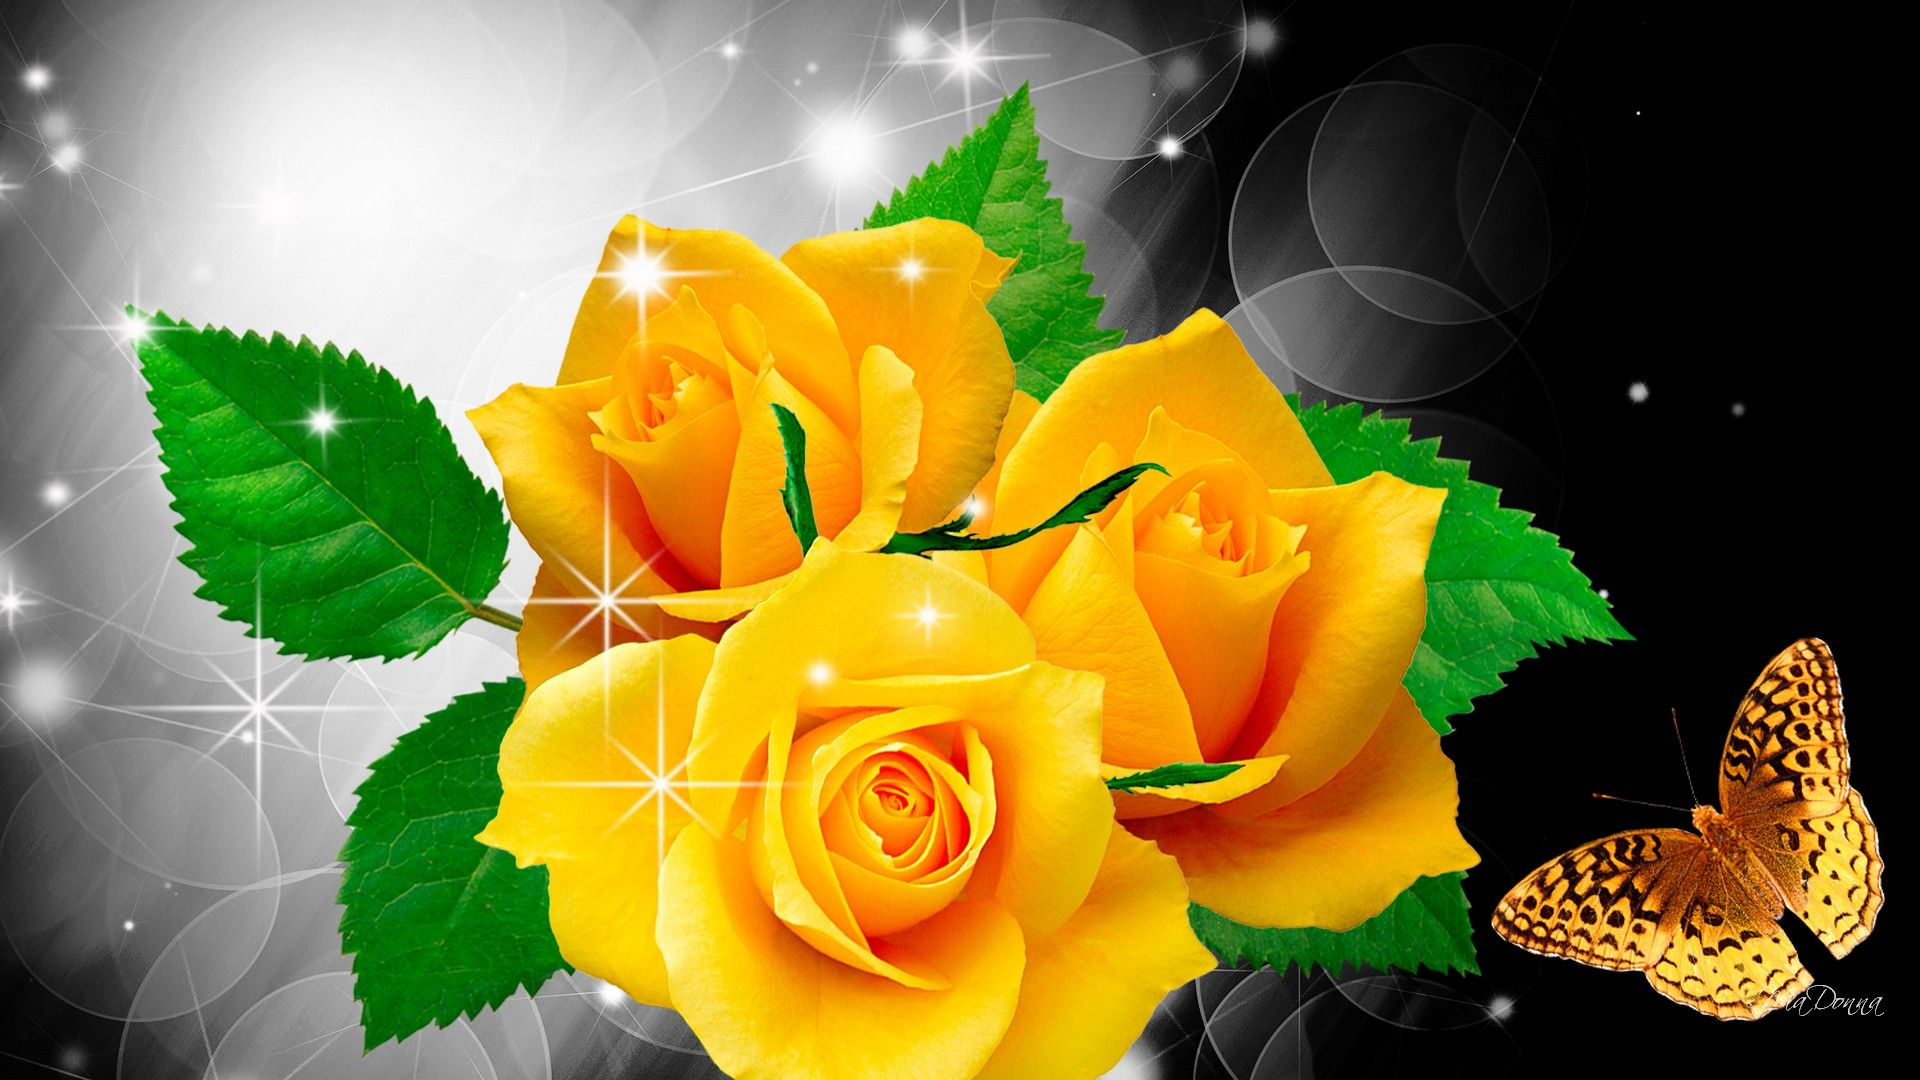 Beautiful Rose Flowers Pictures And Wallpapers69 Rose Flowers Yellow Roses Rose Wallpaper Rose